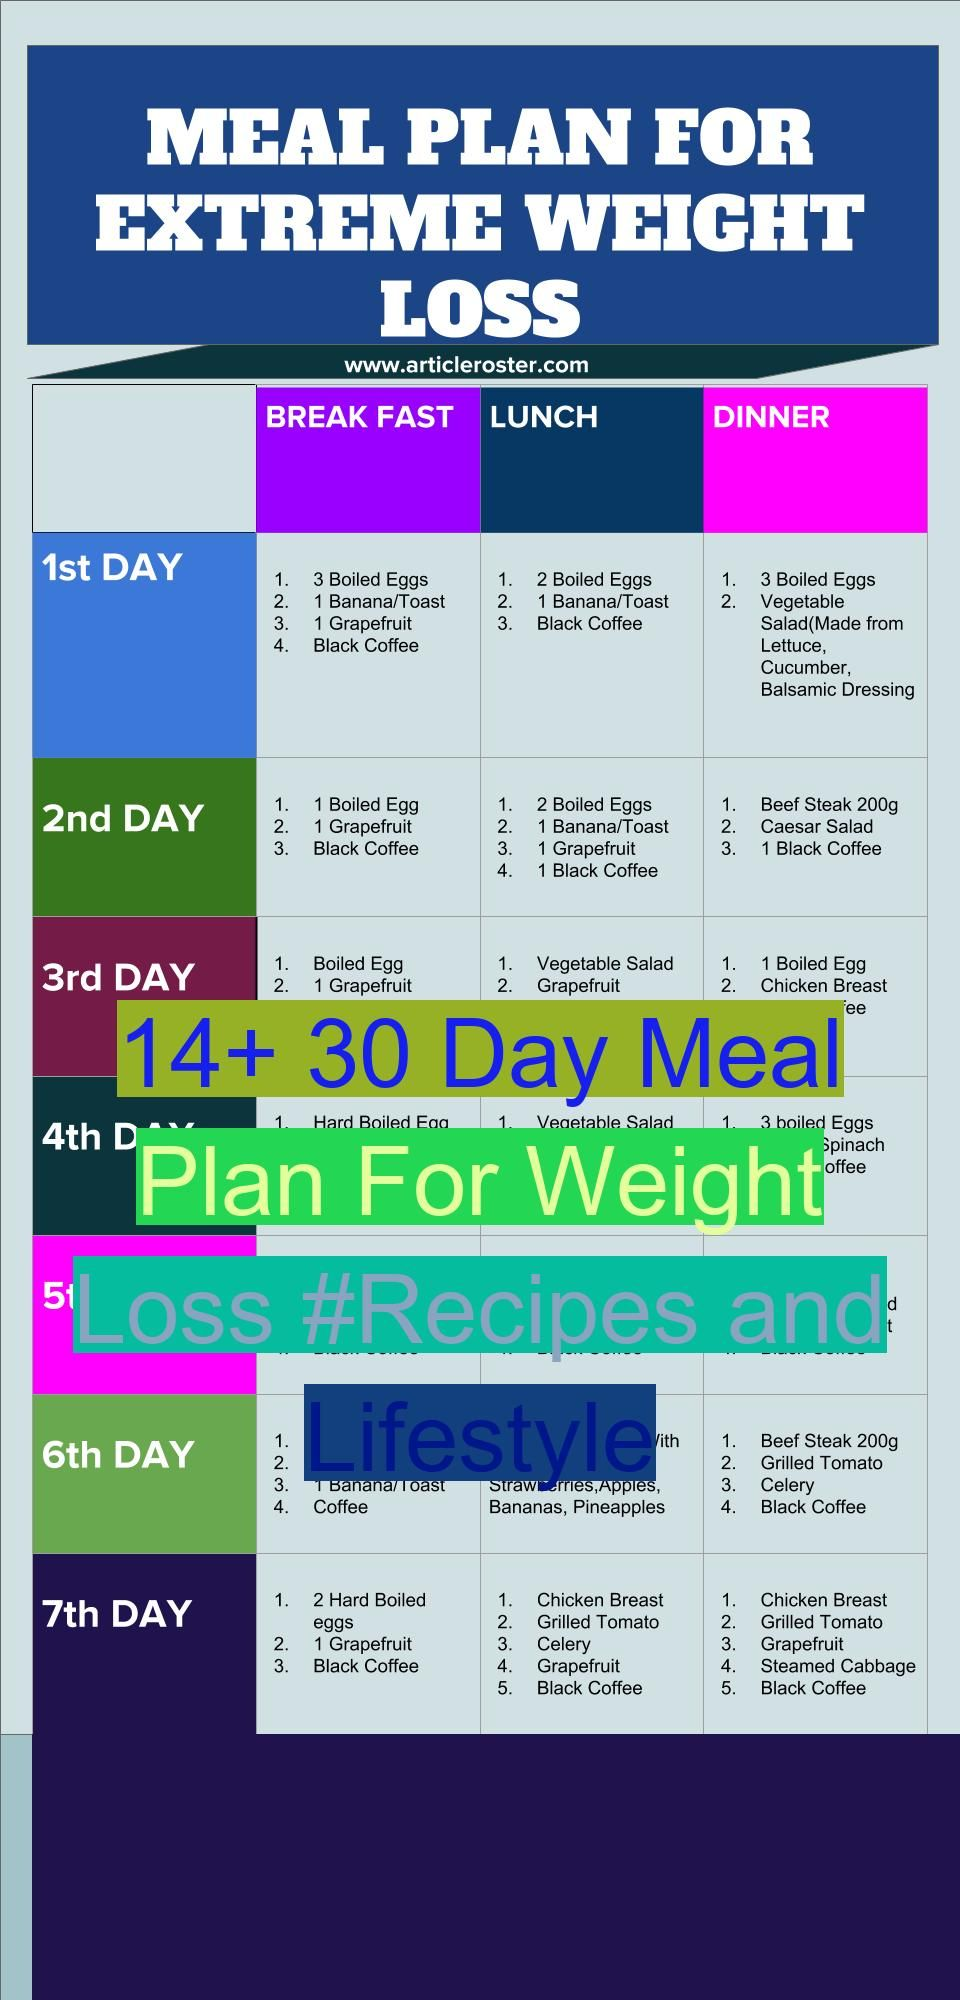 30 Day Meal Plan For Weight Loss Denisa Qidan Denisaqidan Fitness Health Diet Here Is A Diet Meal Plan To Lose Weight For